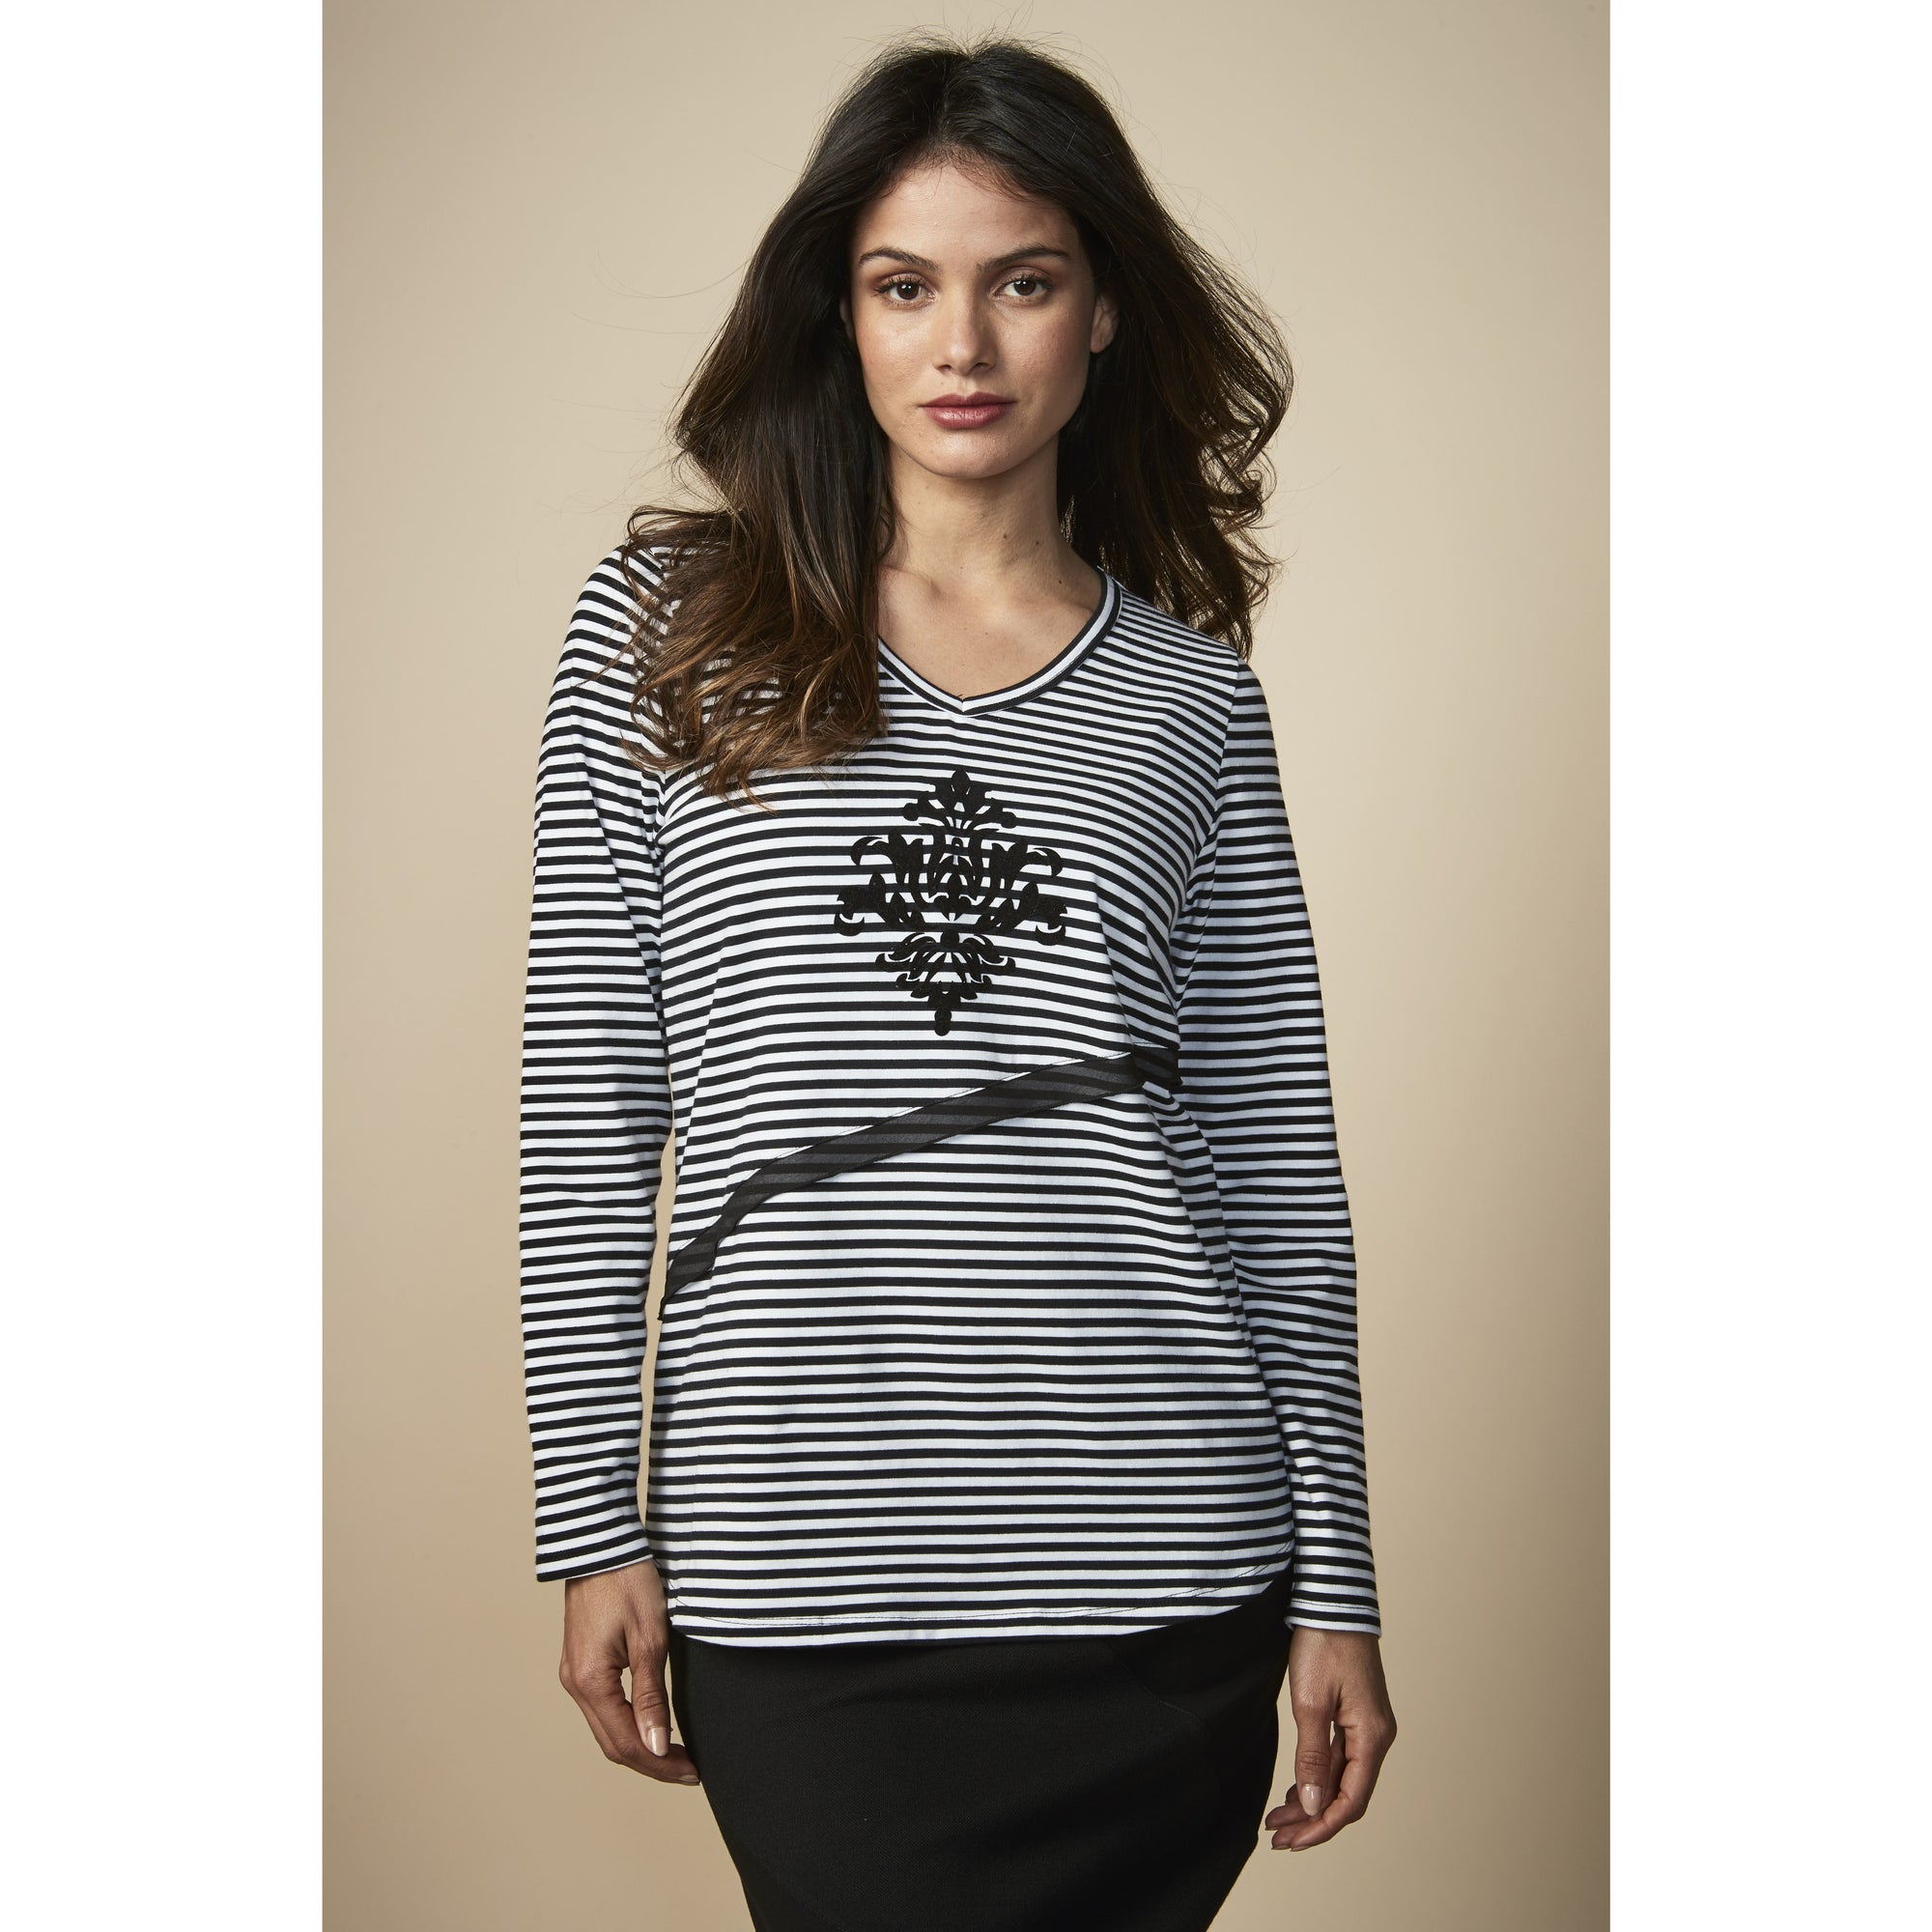 Newport Collection Bella Top in Stripe